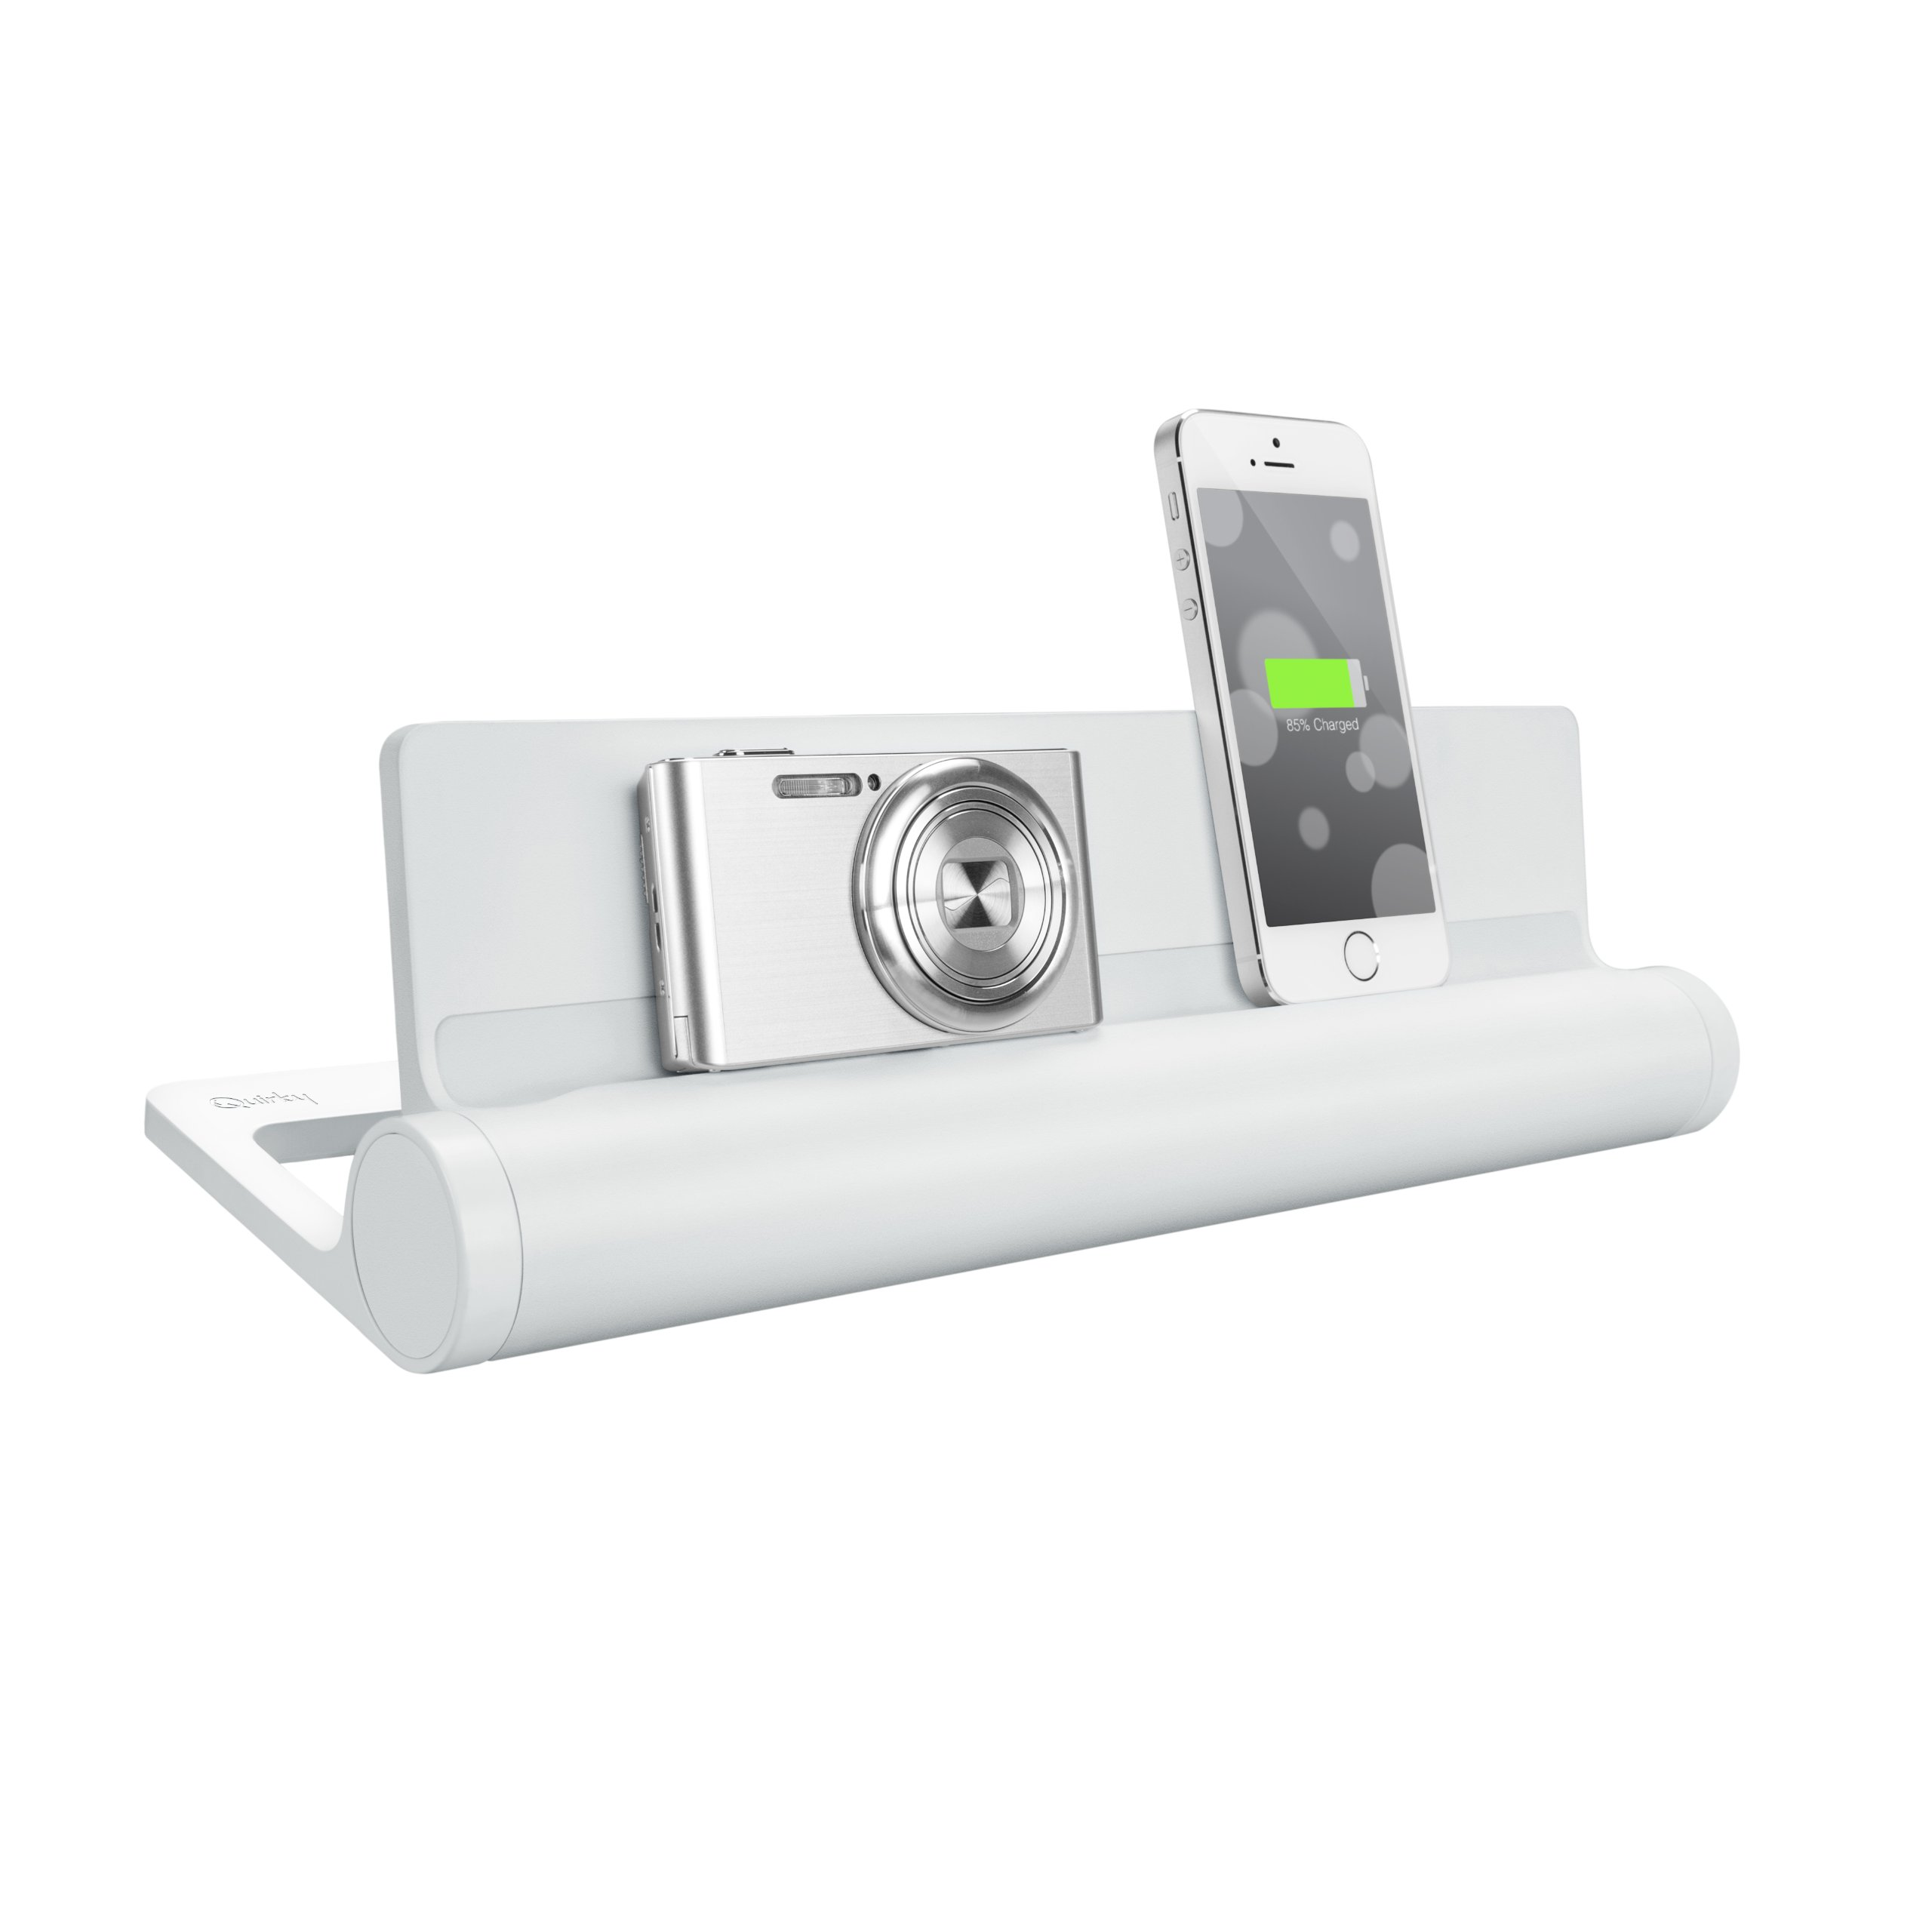 Quirky PCVG3-WH01 Converge Universal USB Docking Station, White by Quirky (Image #1)